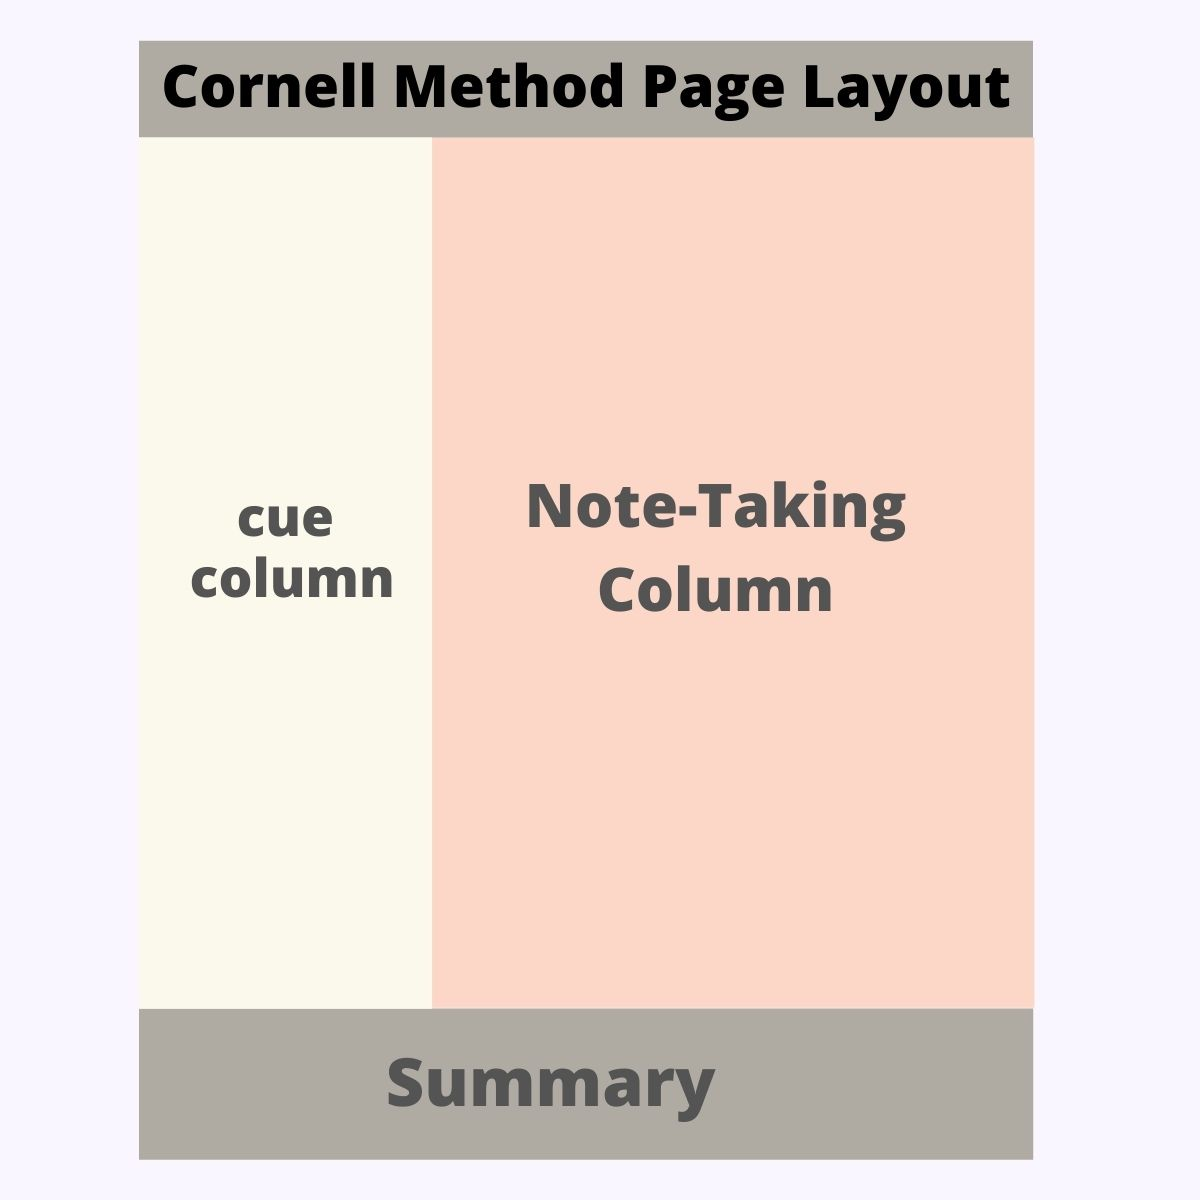 cornell-method-note-taking-layout